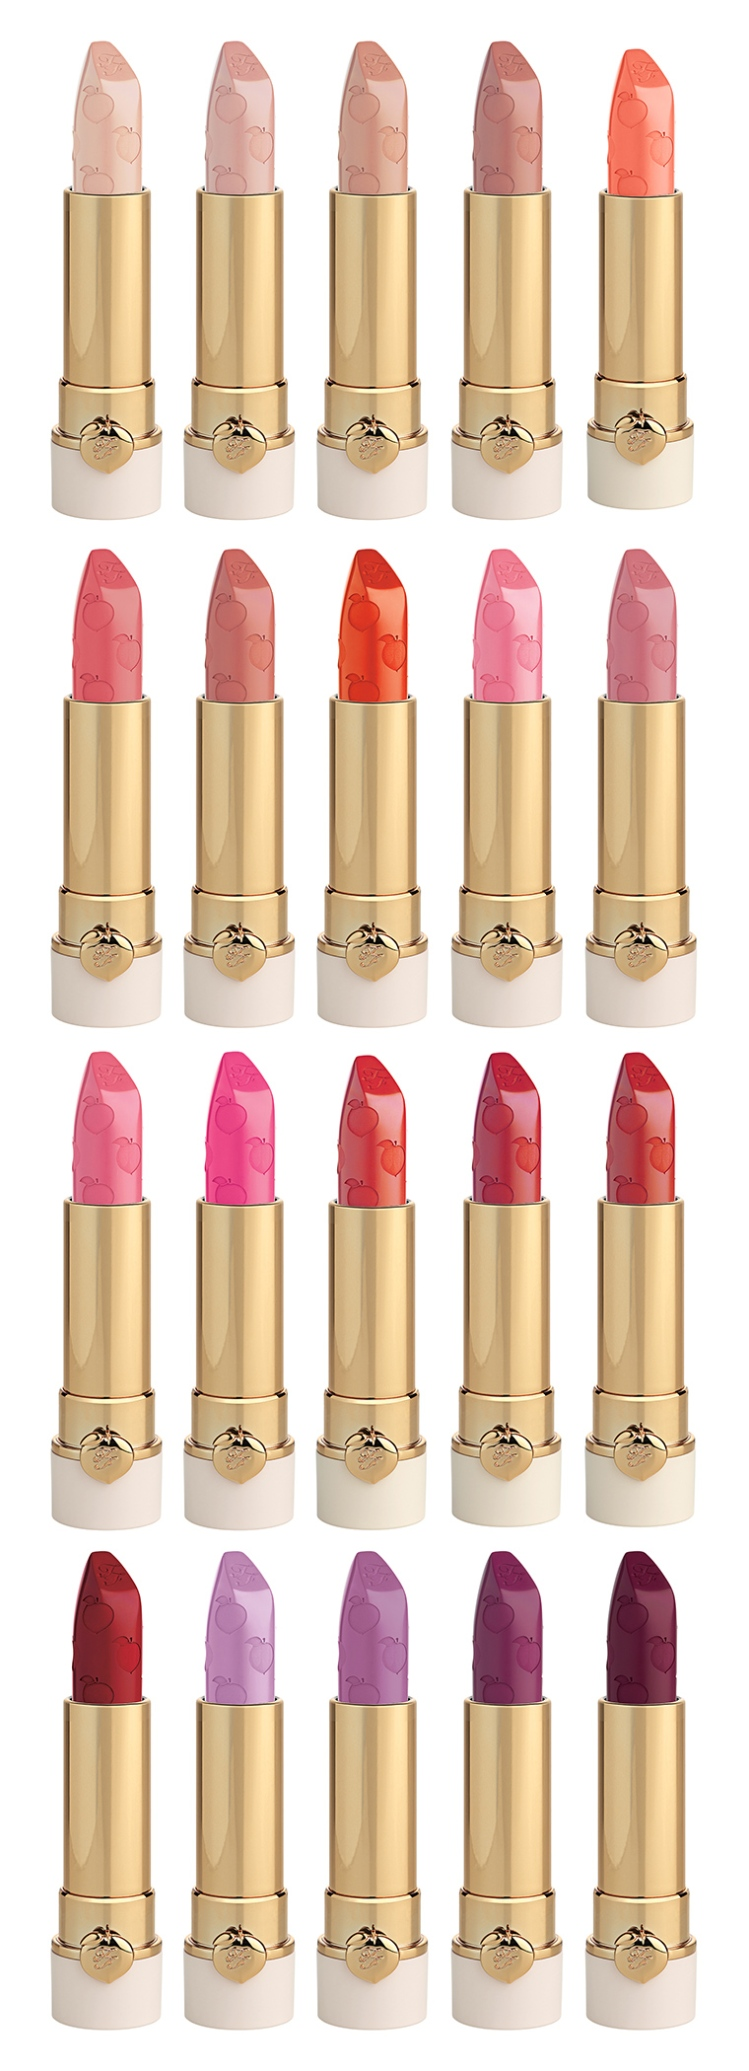 Too Faced Peach Kiss Lipstick Full Shades.jpg